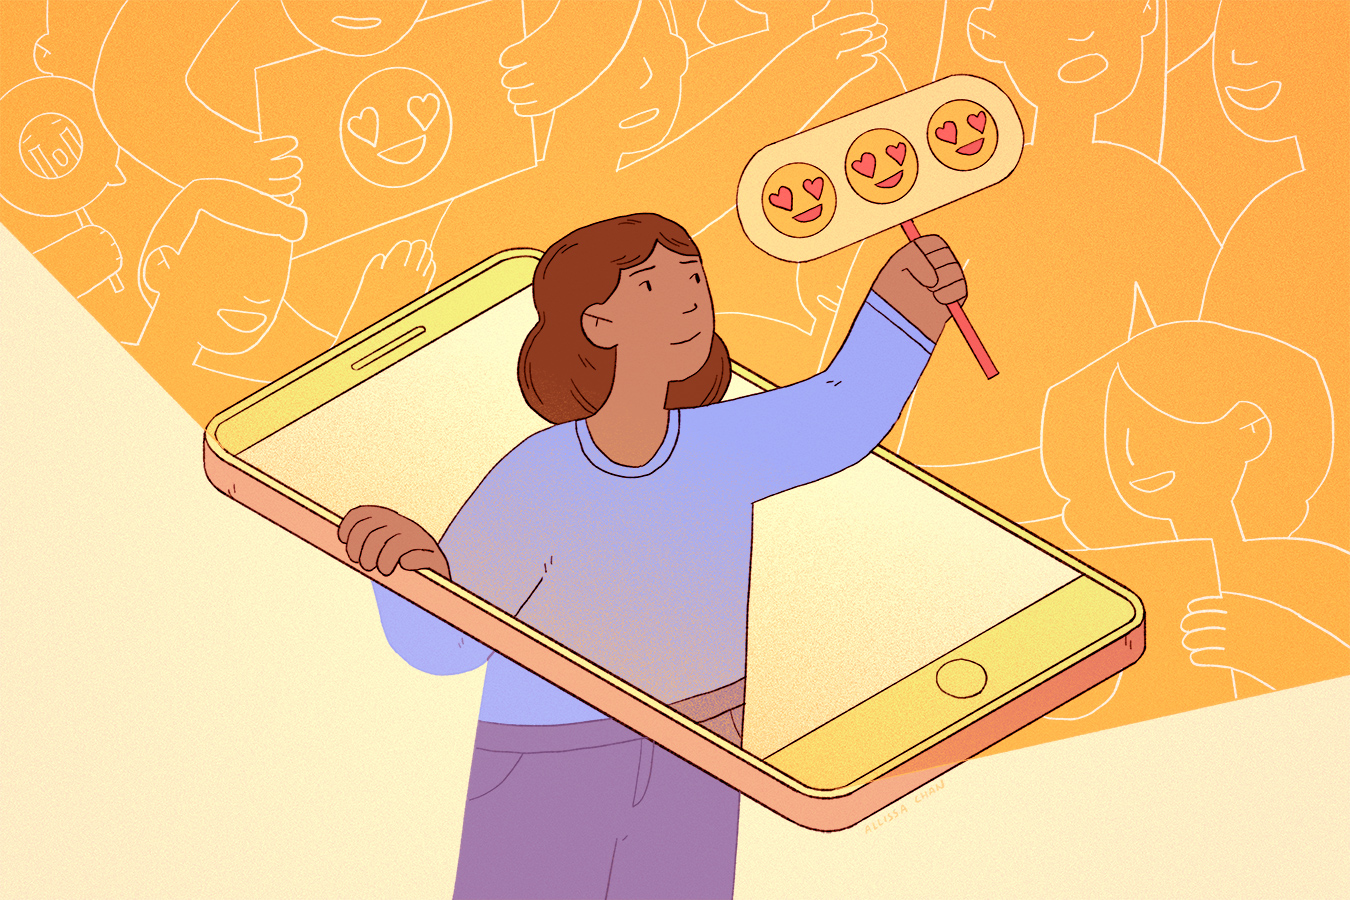 self-directed assignment  — a look at the unspoken rules of teens' social media use